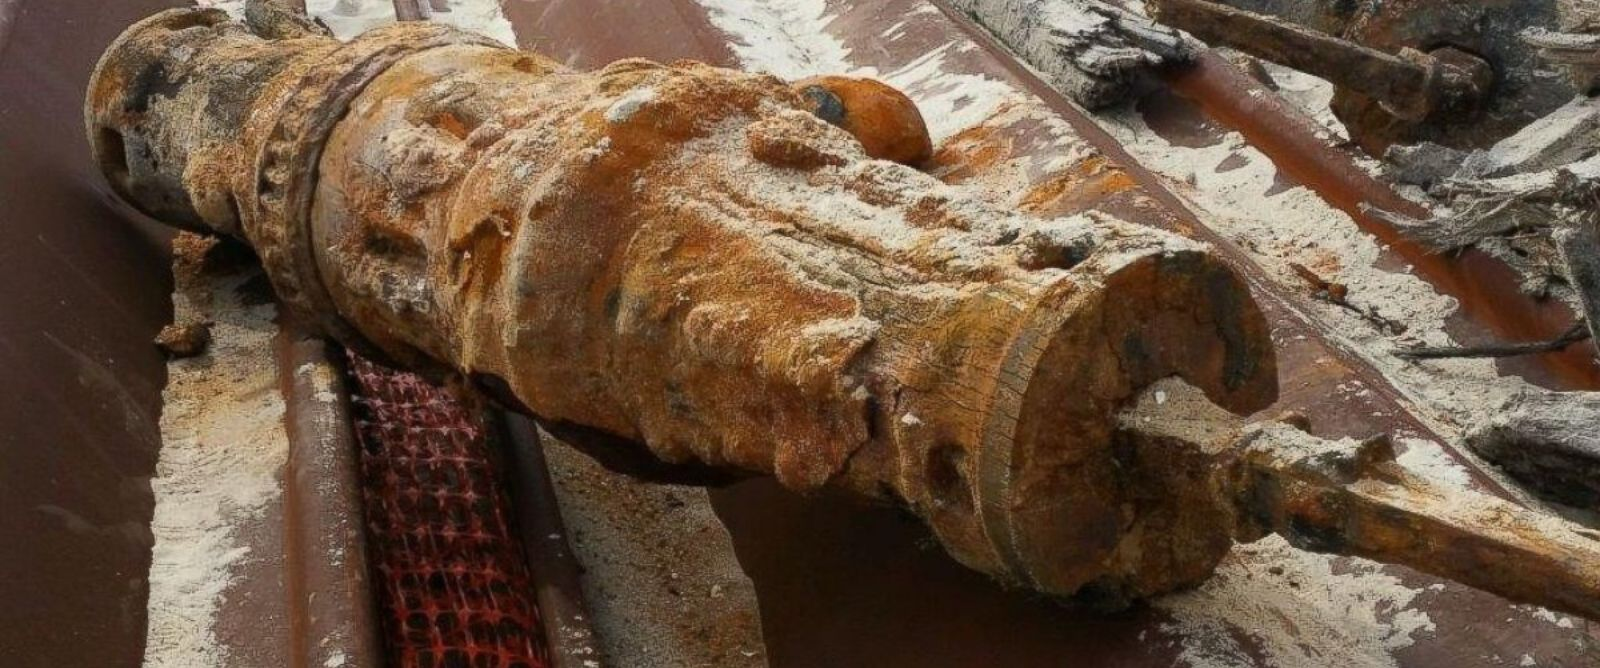 PHOTO: A photo of debris from a shipwreck unearthed in Brick, New Jersey